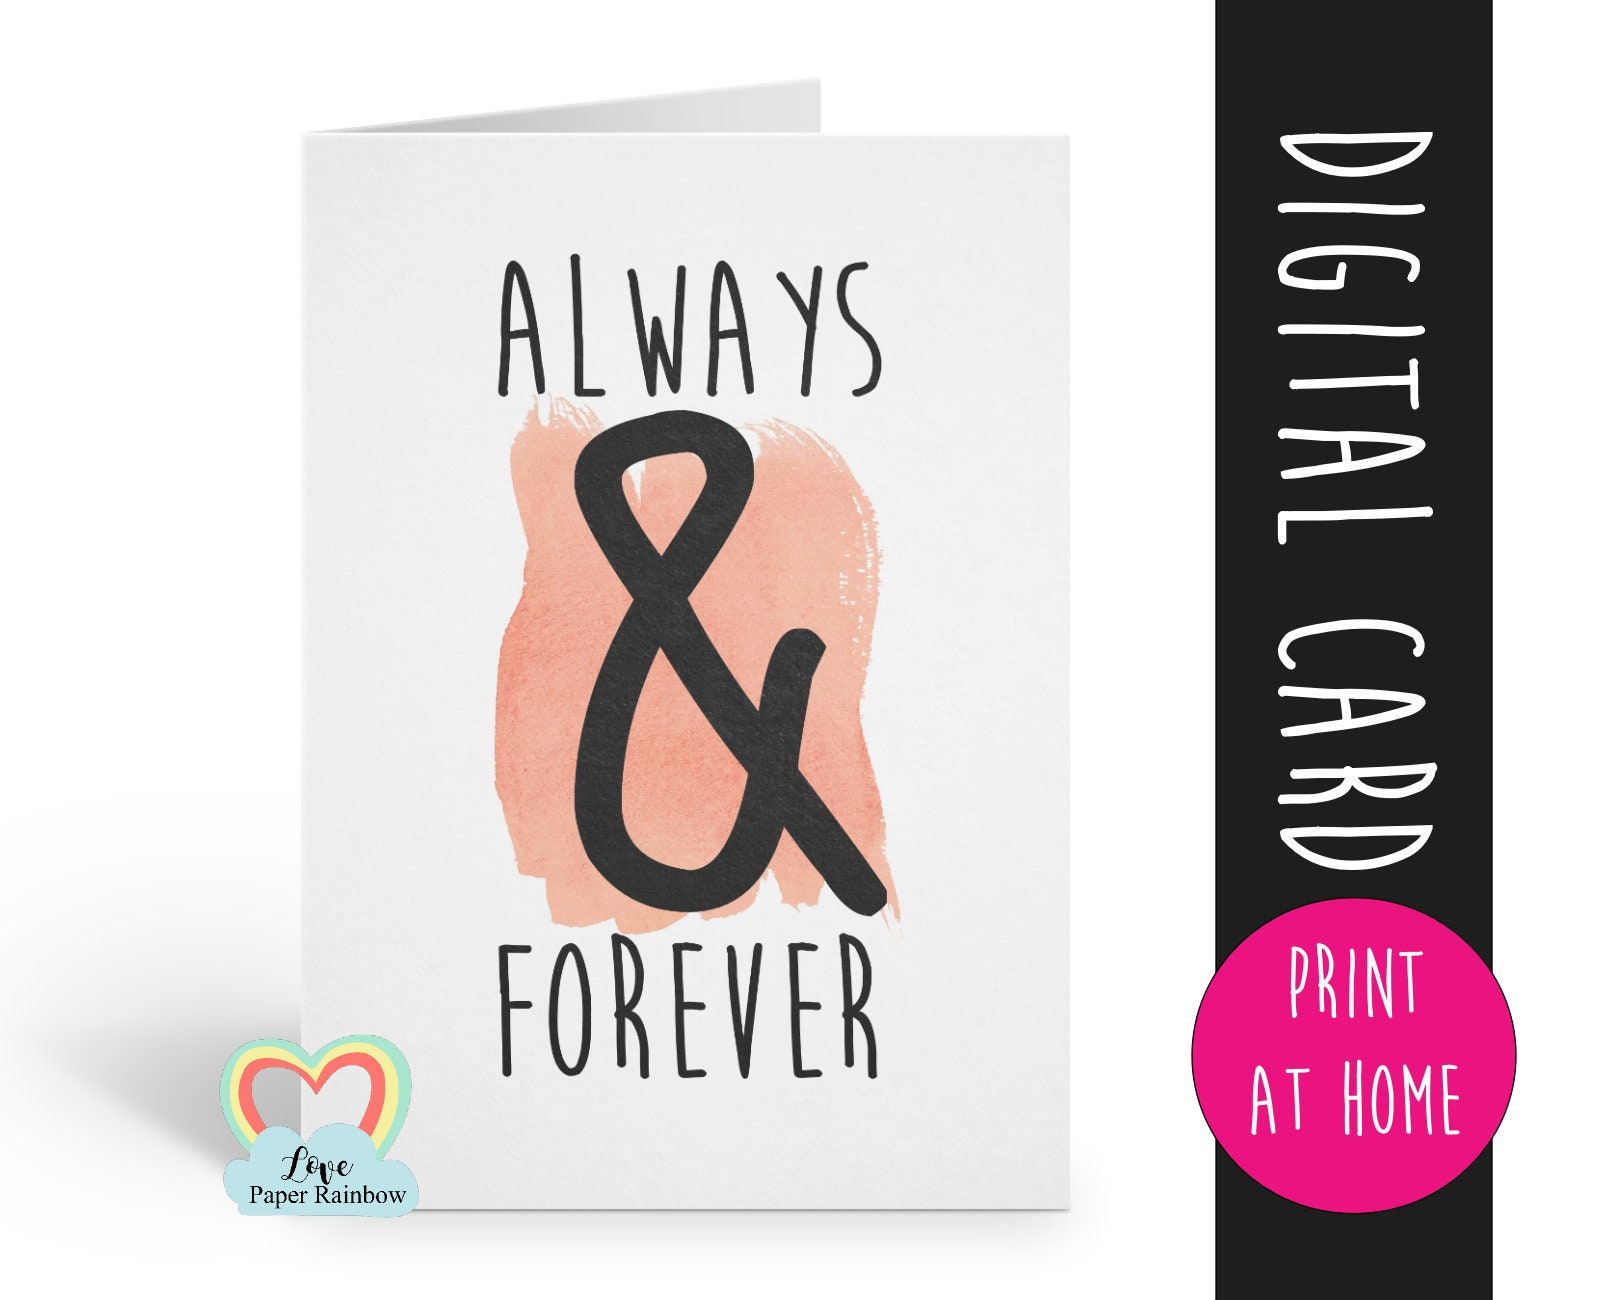 photograph about Happy Anniversary Card Printable named PRINTABLE anniversary card, PRINTABLE valentines card